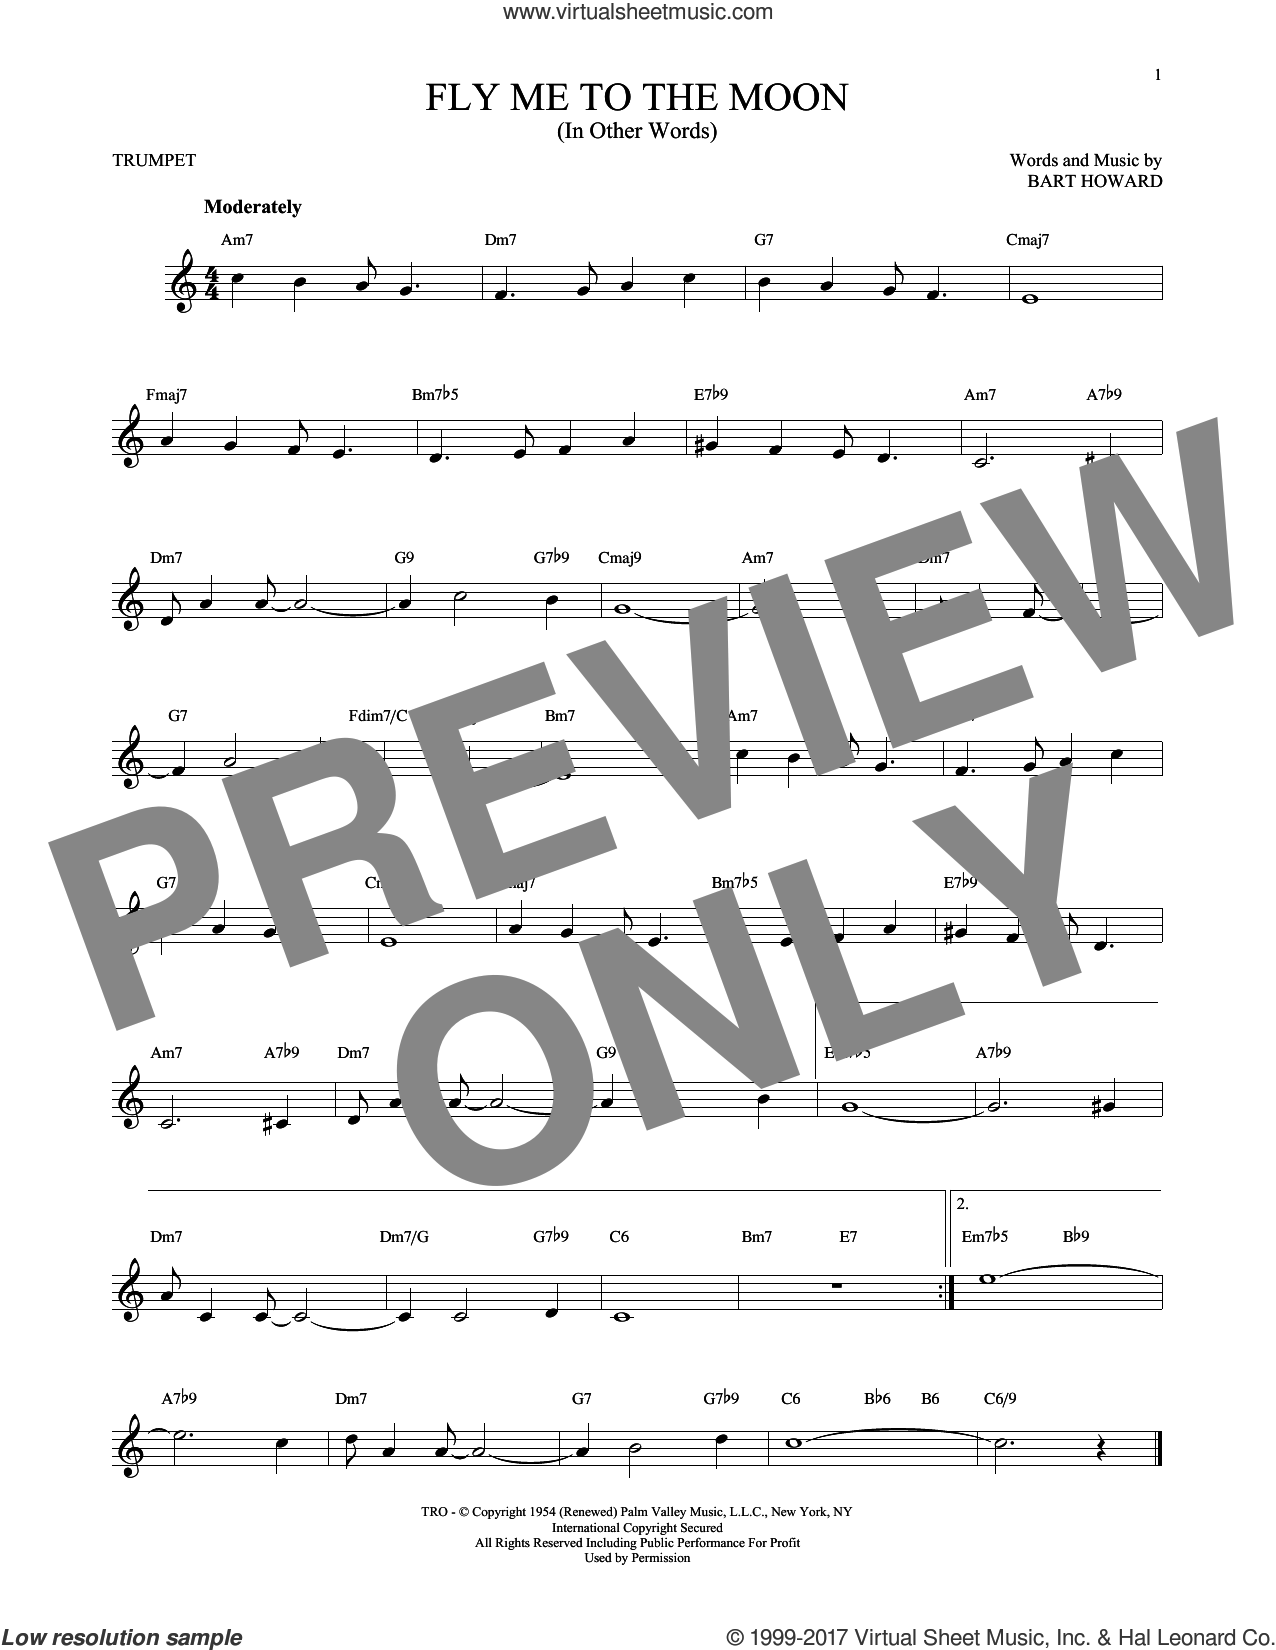 Fly Me To The Moon (In Other Words) sheet music for trumpet solo by Bart Howard and Tony Bennett, wedding score, intermediate skill level